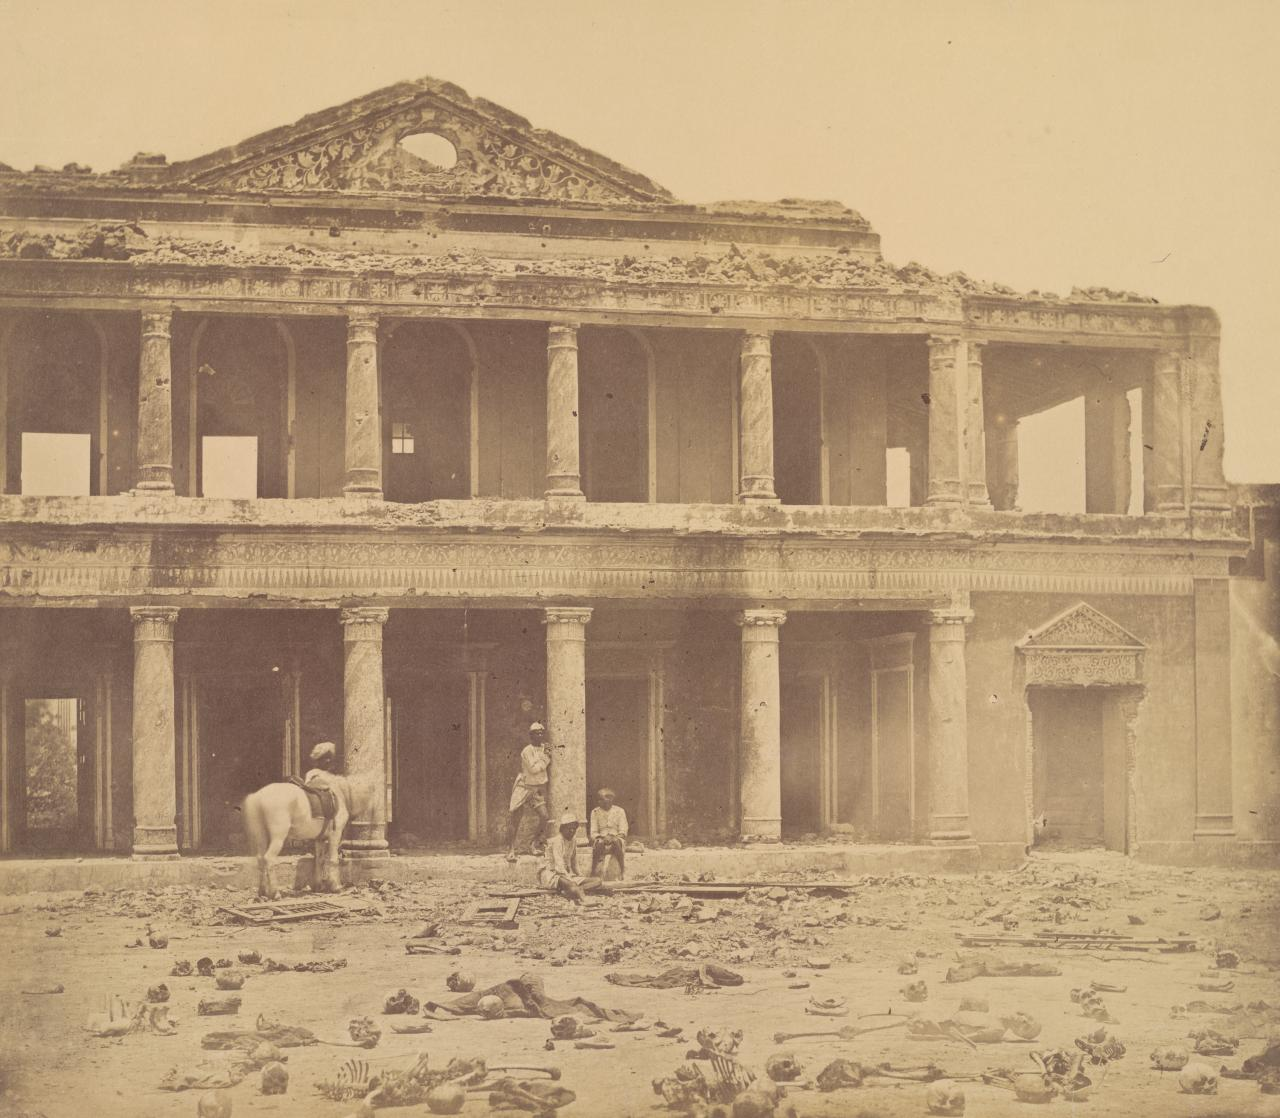 Interior of the Secundra Bagh after the slaughter of 2000 rebels by H. M. 73rd Highlanders, Lucknow, 24th Punjab Infantry